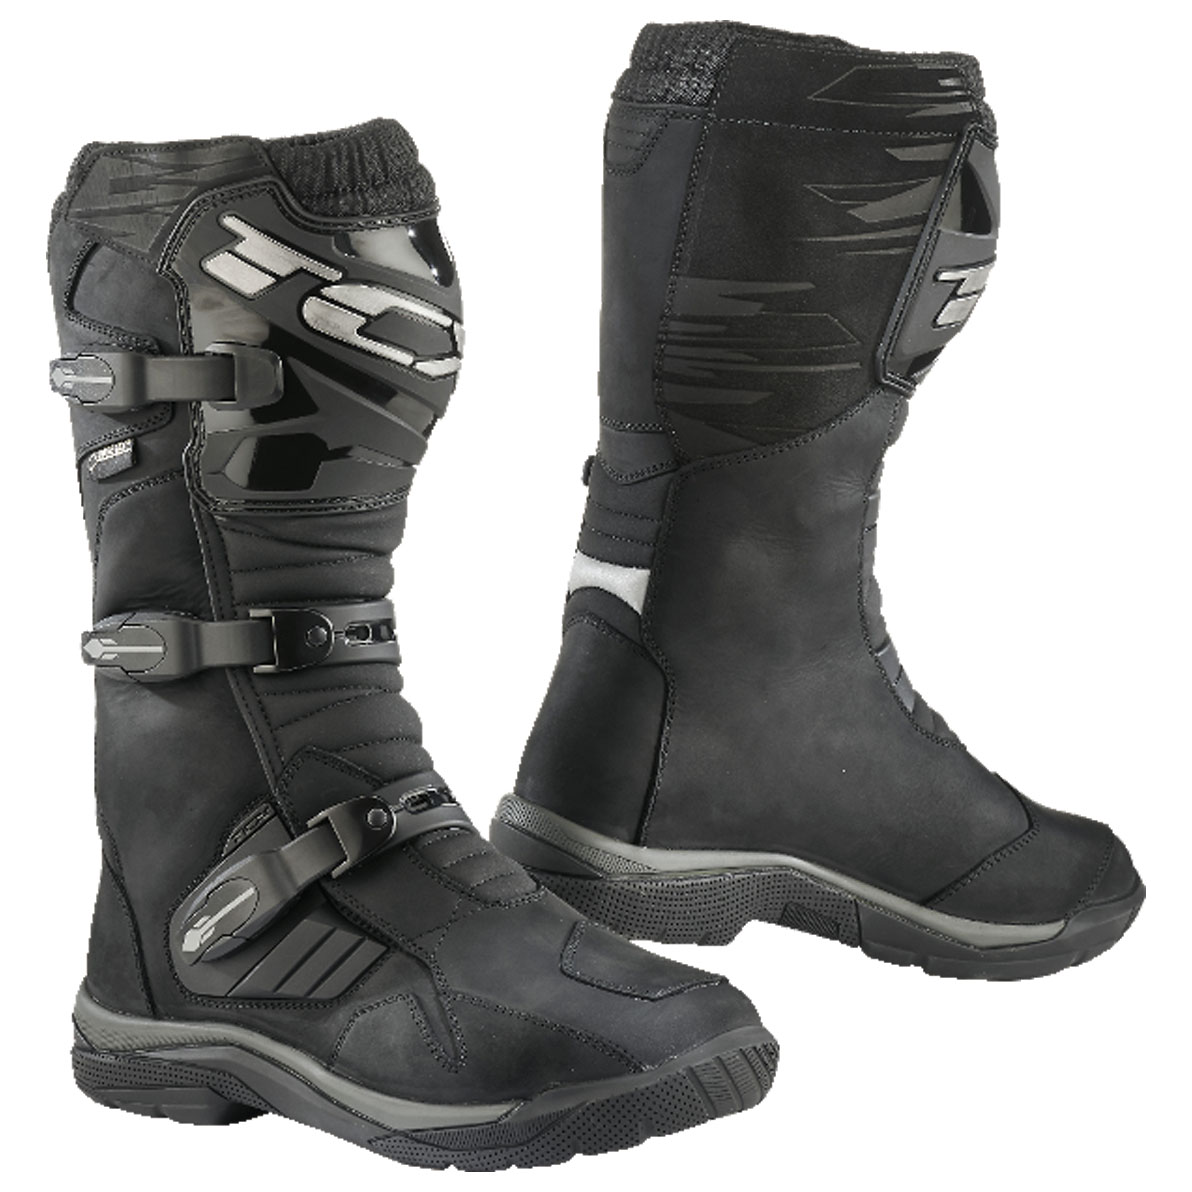 TCX Men's Baja Gore-Tex Black Boots